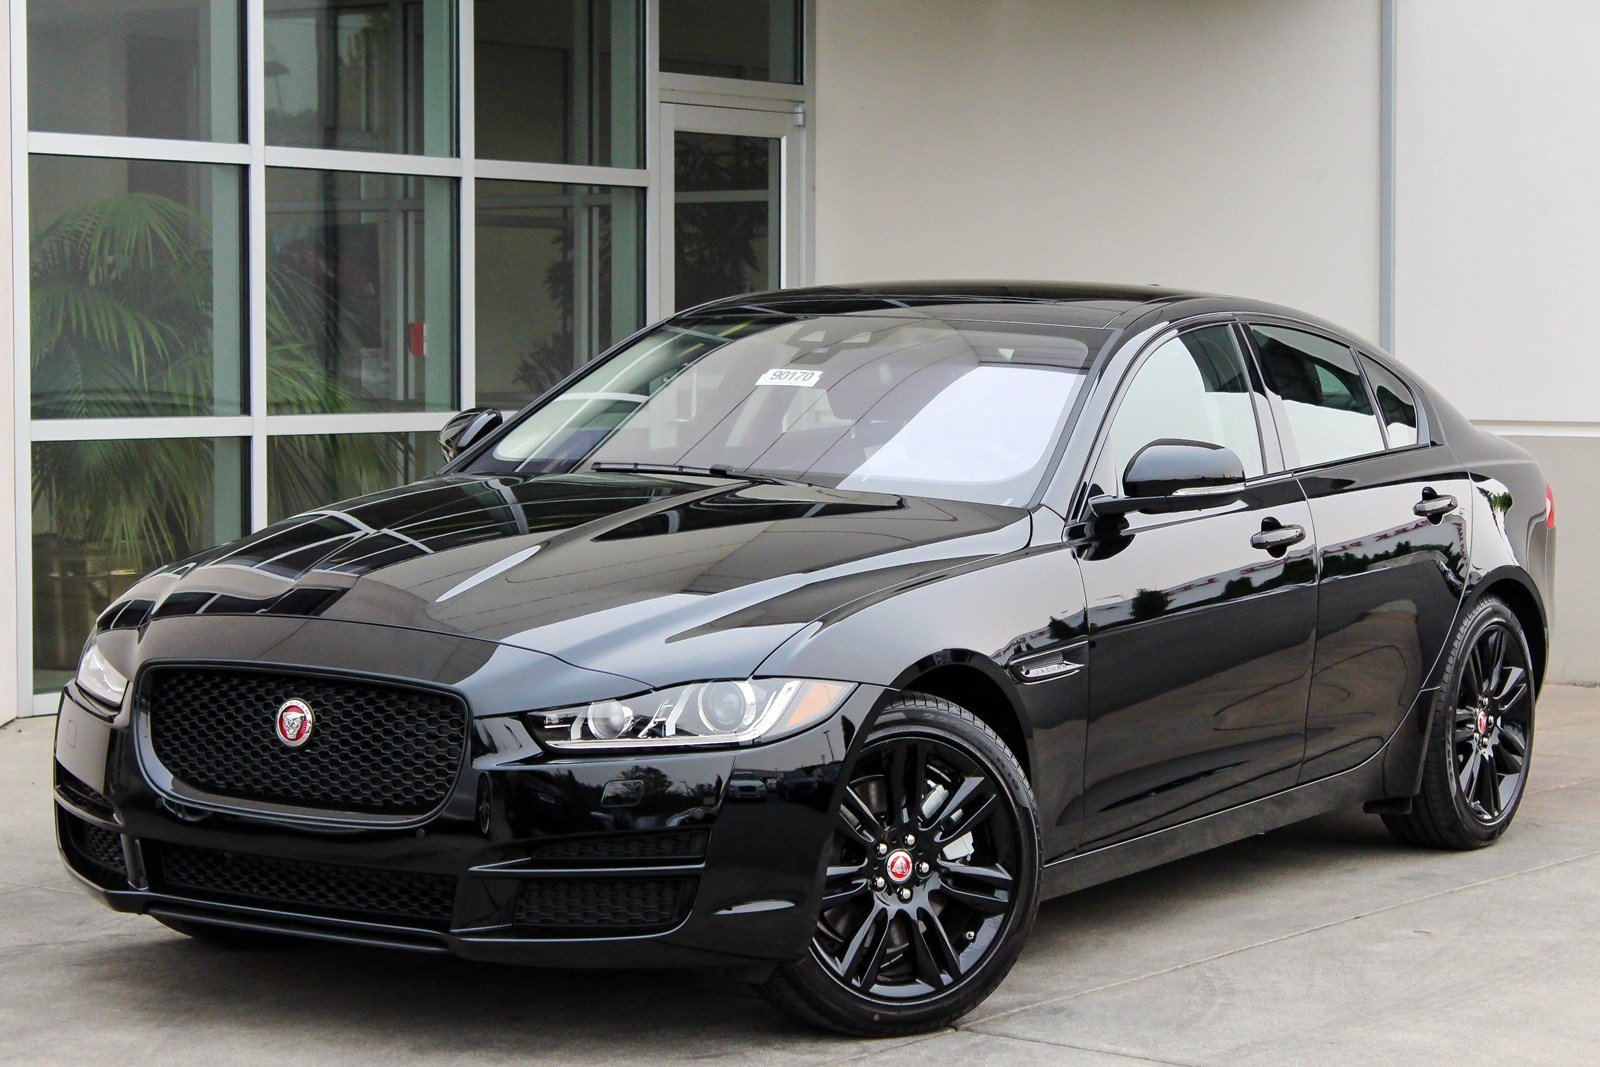 2018 jaguar xe. wonderful jaguar new 2018 jaguar xe 25t prestige inside jaguar xe